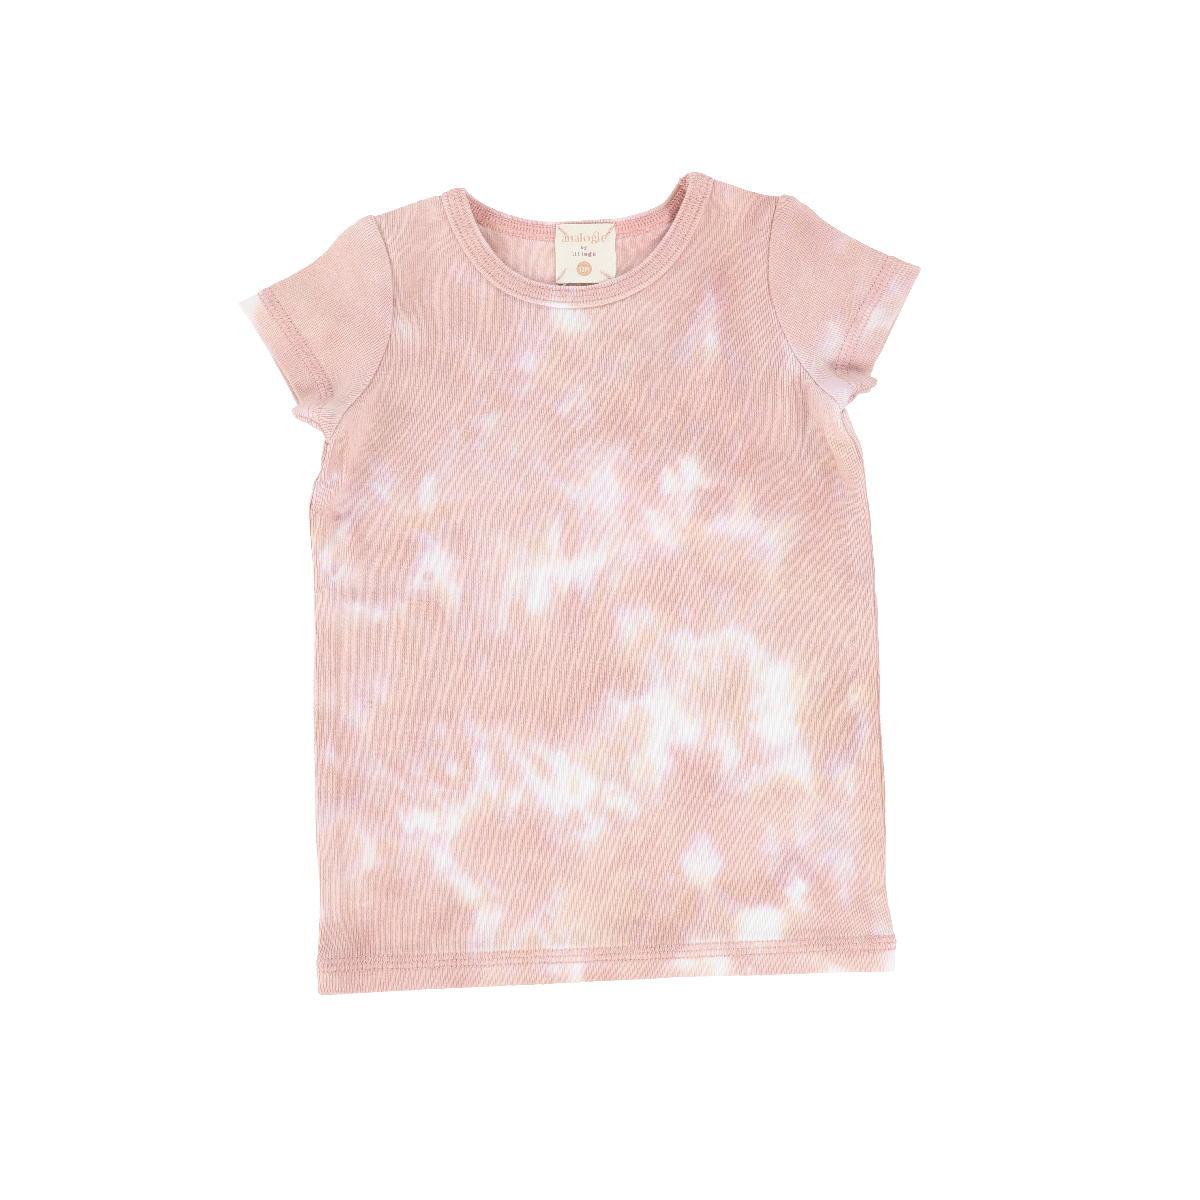 Analogie Blush Watercolor Short Sleeve Tee